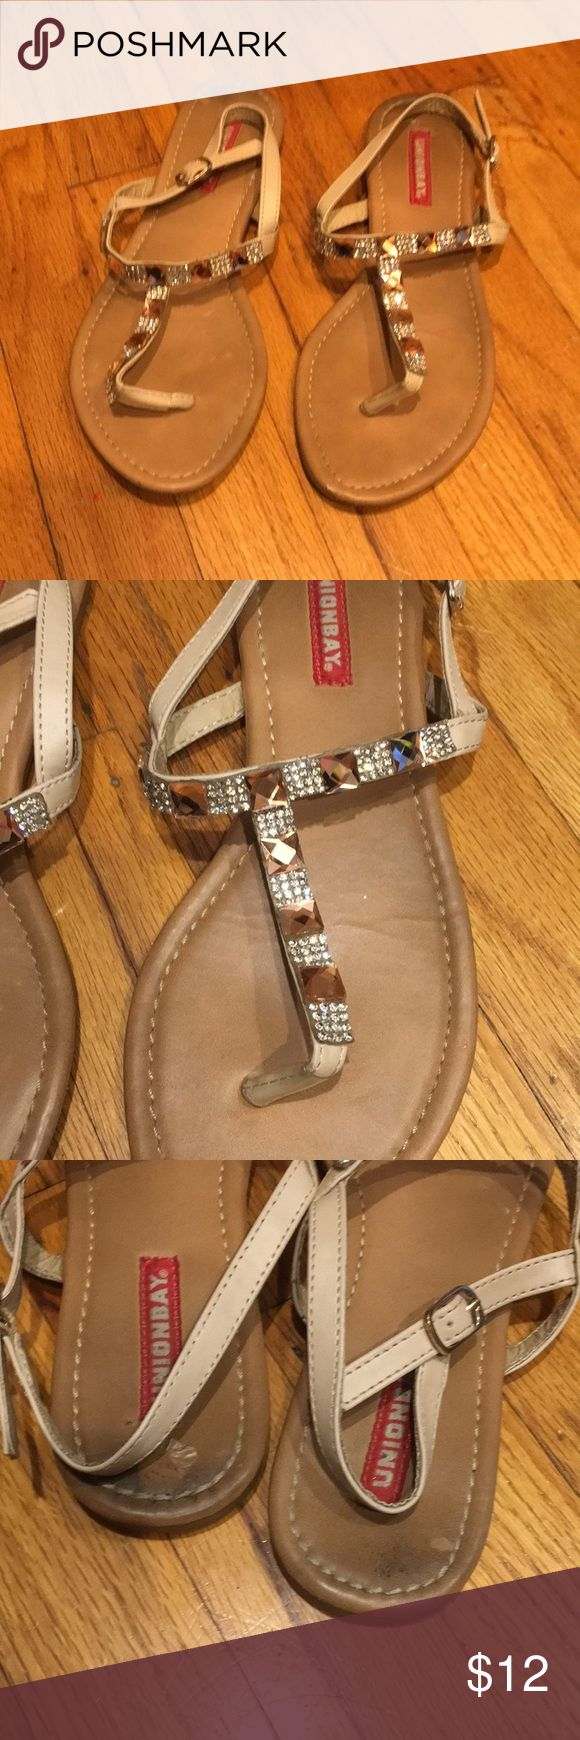 Cream sandals with pink and clear stones Darling summer flats that sparkle a mile away. UNIONBAY Shoes Sandals